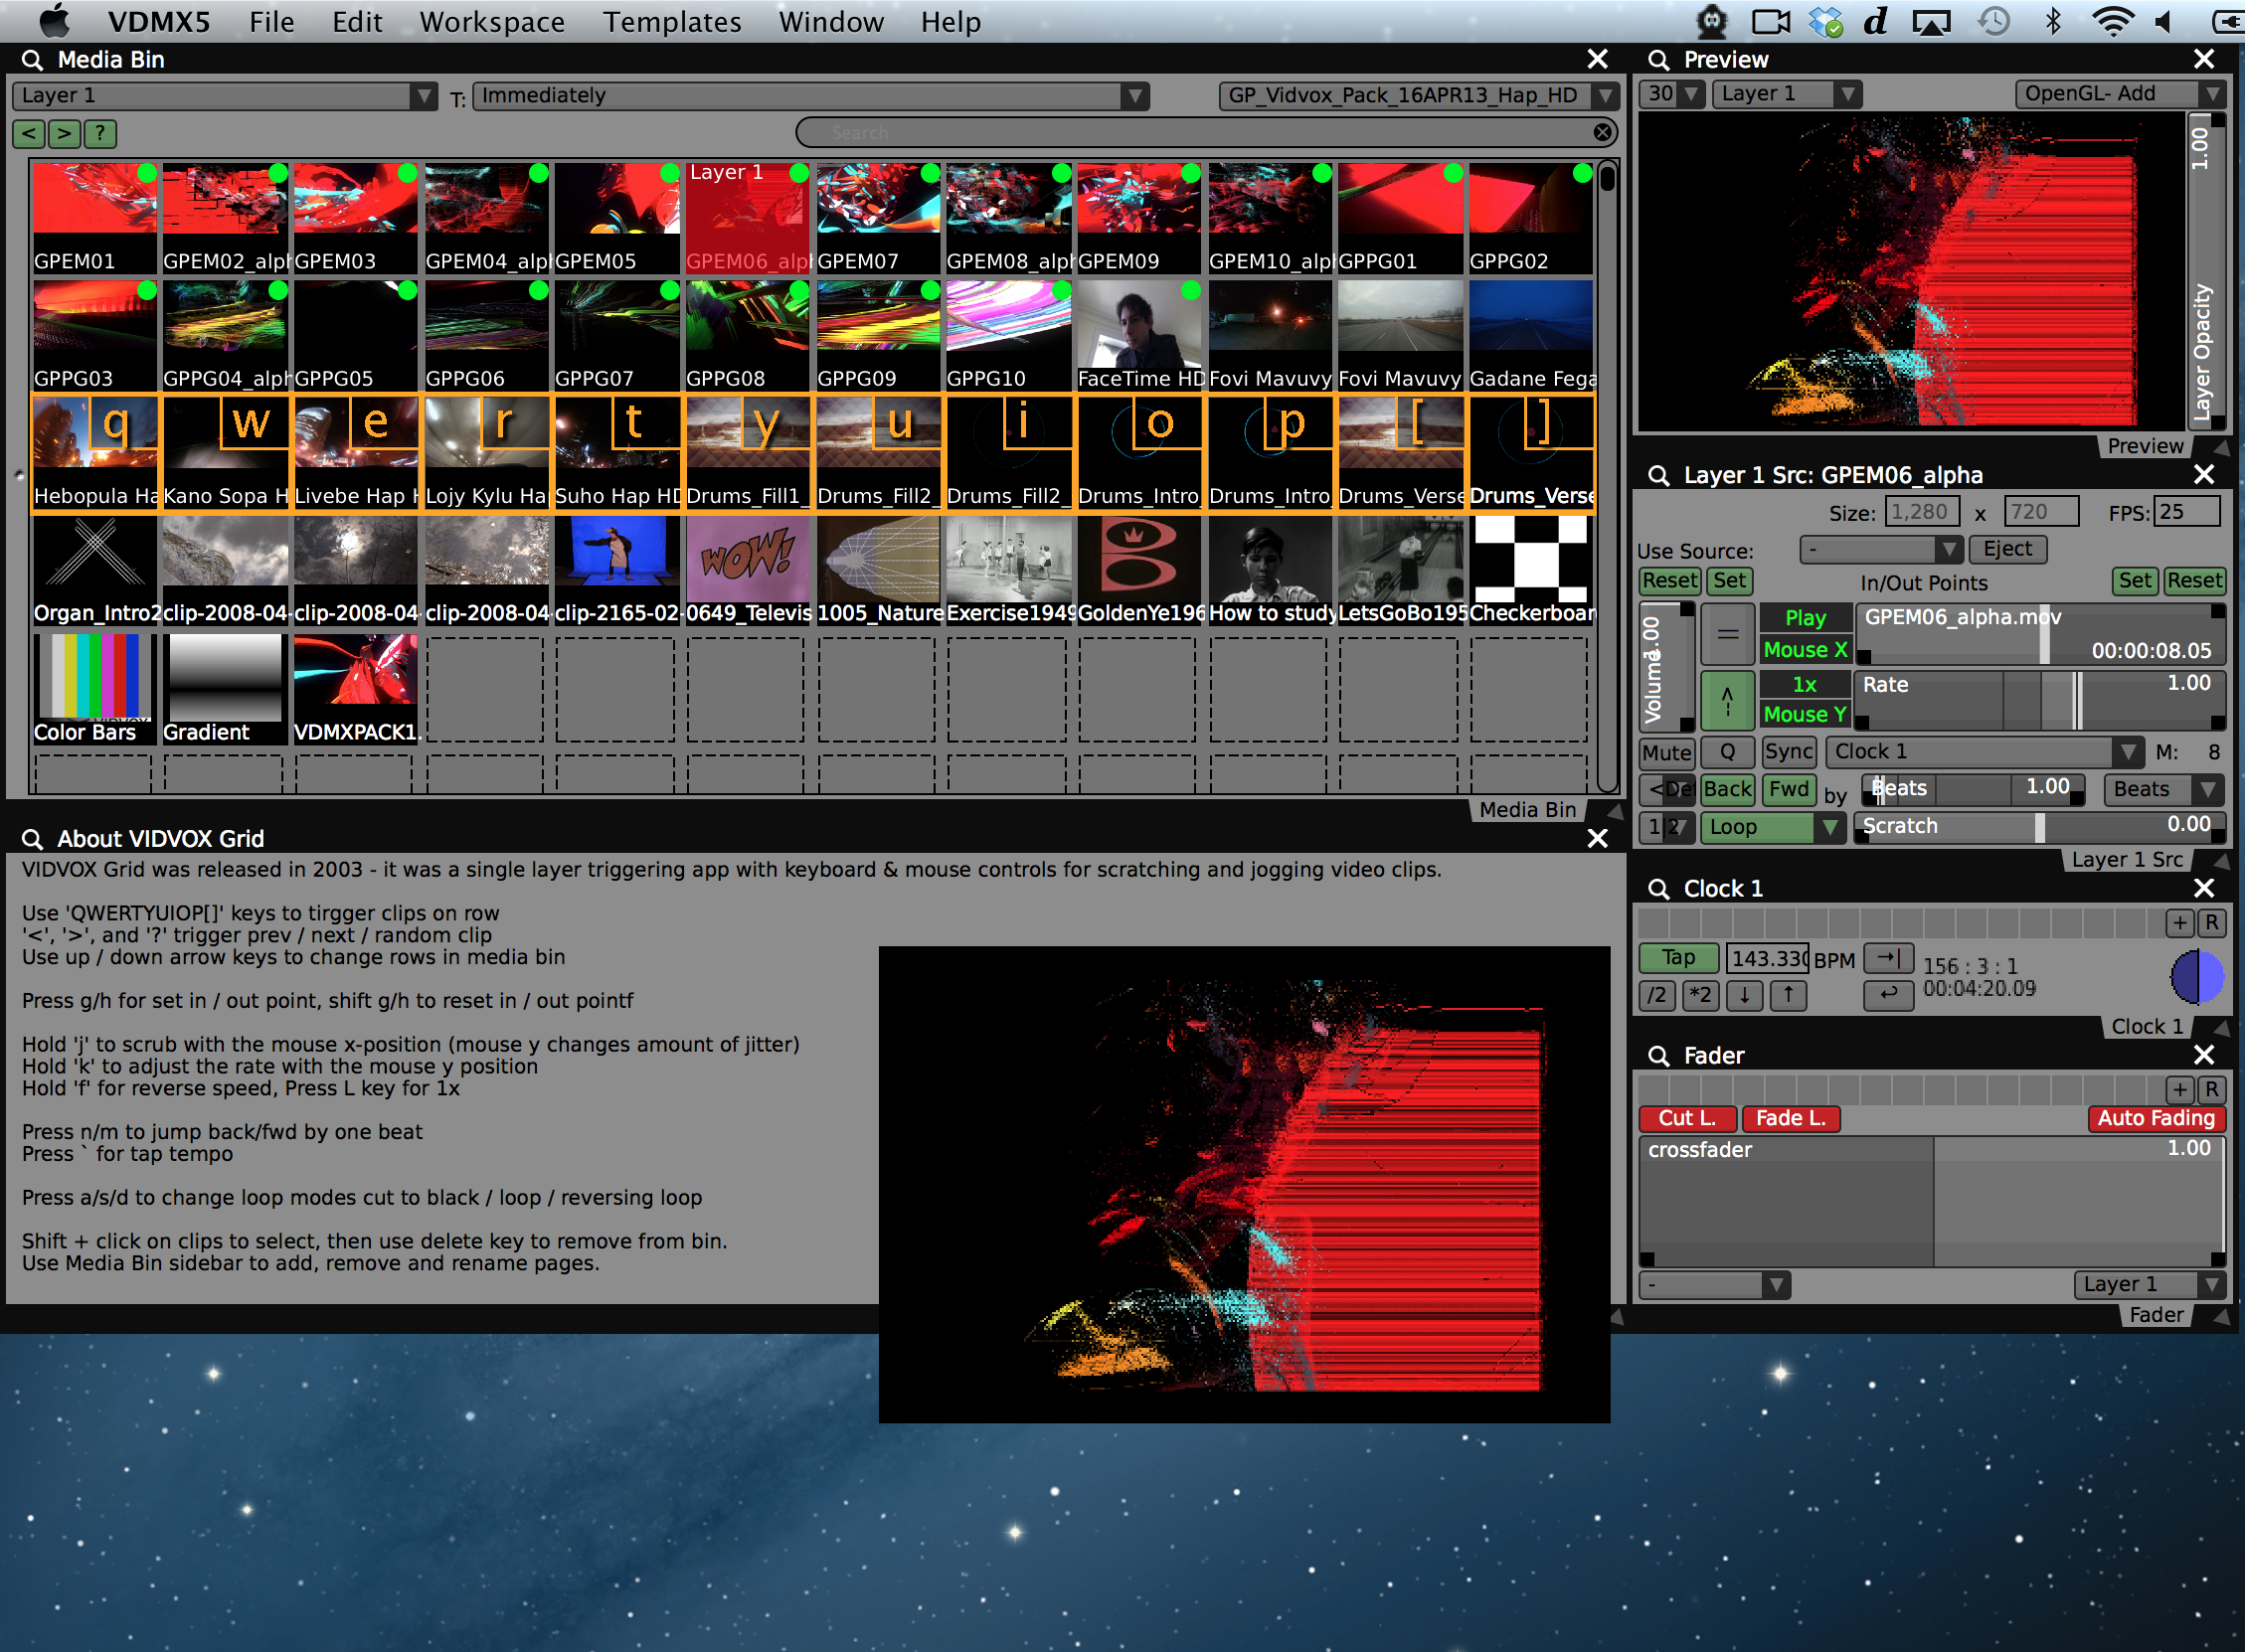 Screenshot of completed Grid template for VDMX.